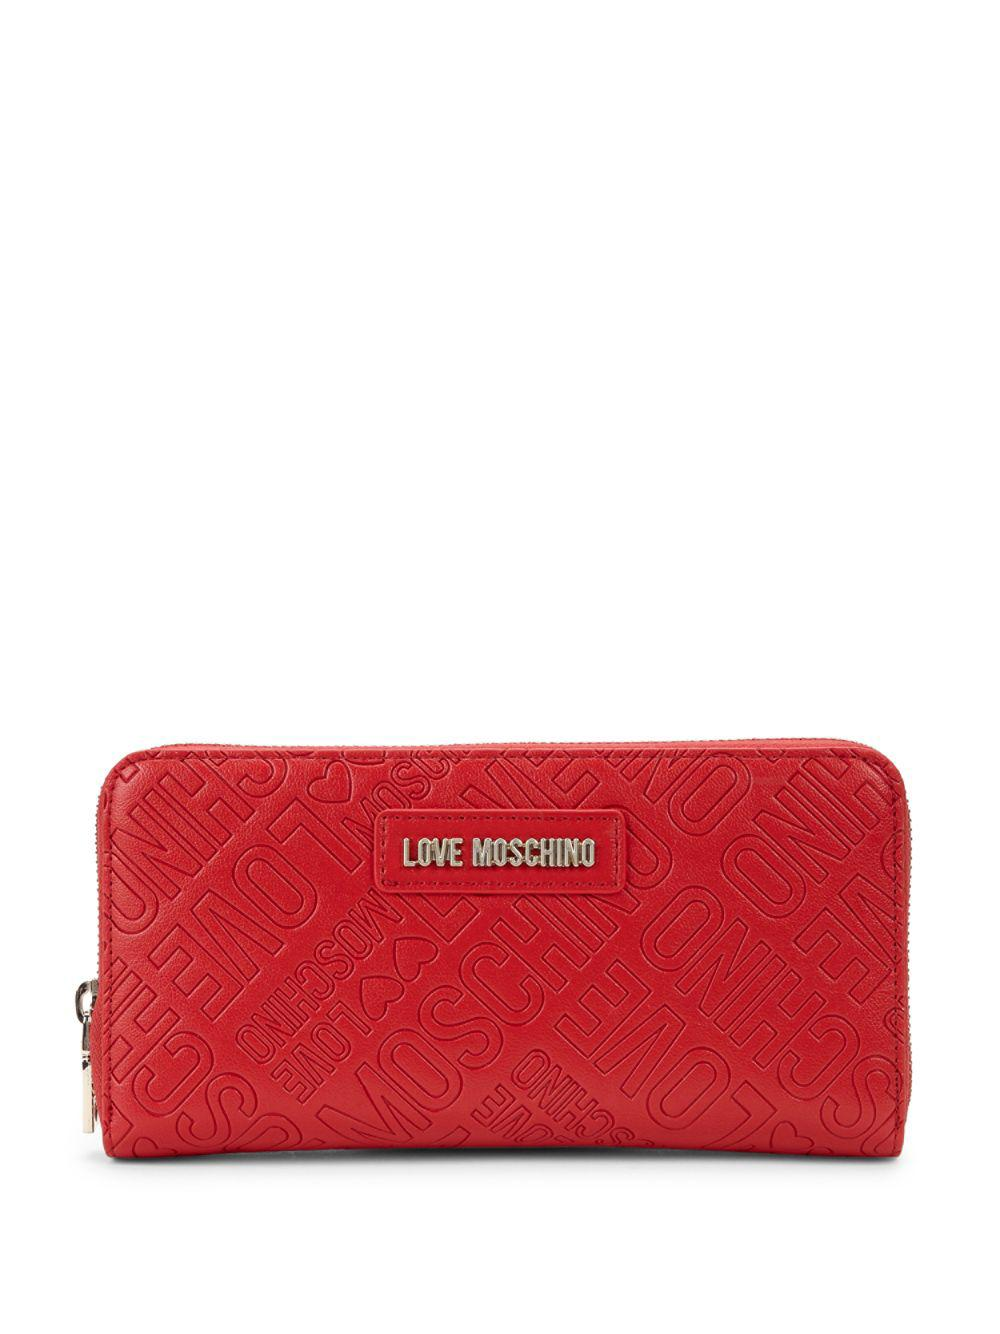 bb34f57d0c5 Lyst - Love Moschino Logo Embossed Zip Wallet in Red